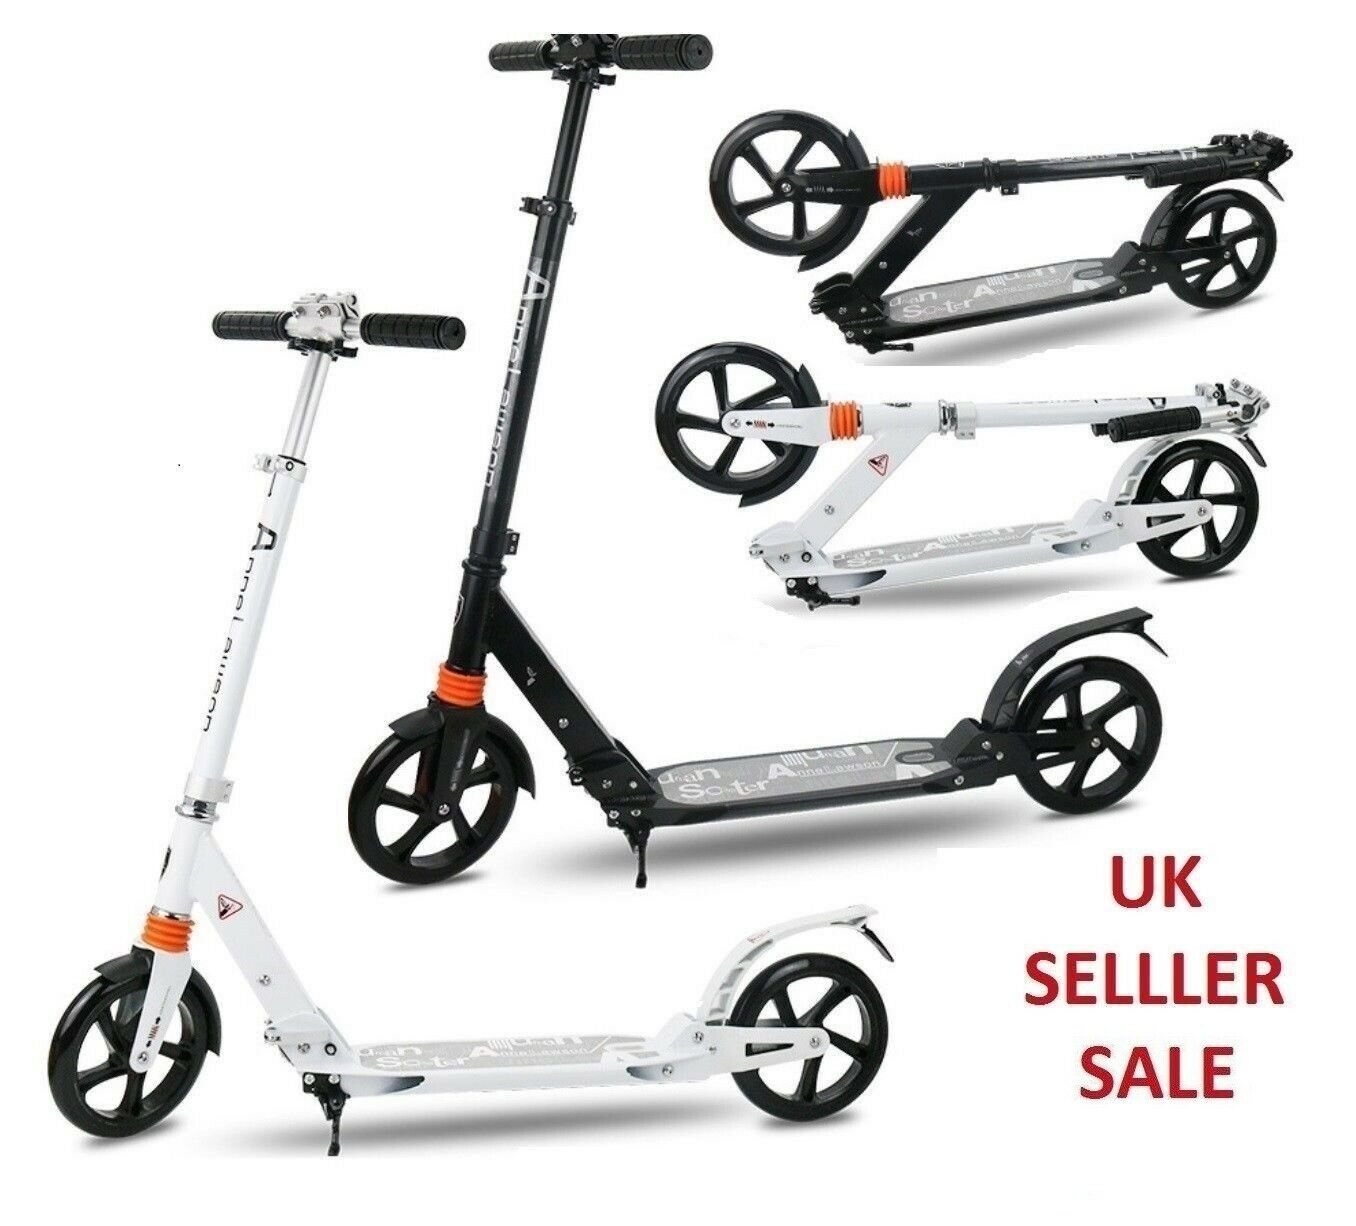 Folding Scooter Bike Big Wheel Scooter W  Suspension Adult Commuter With Grips B